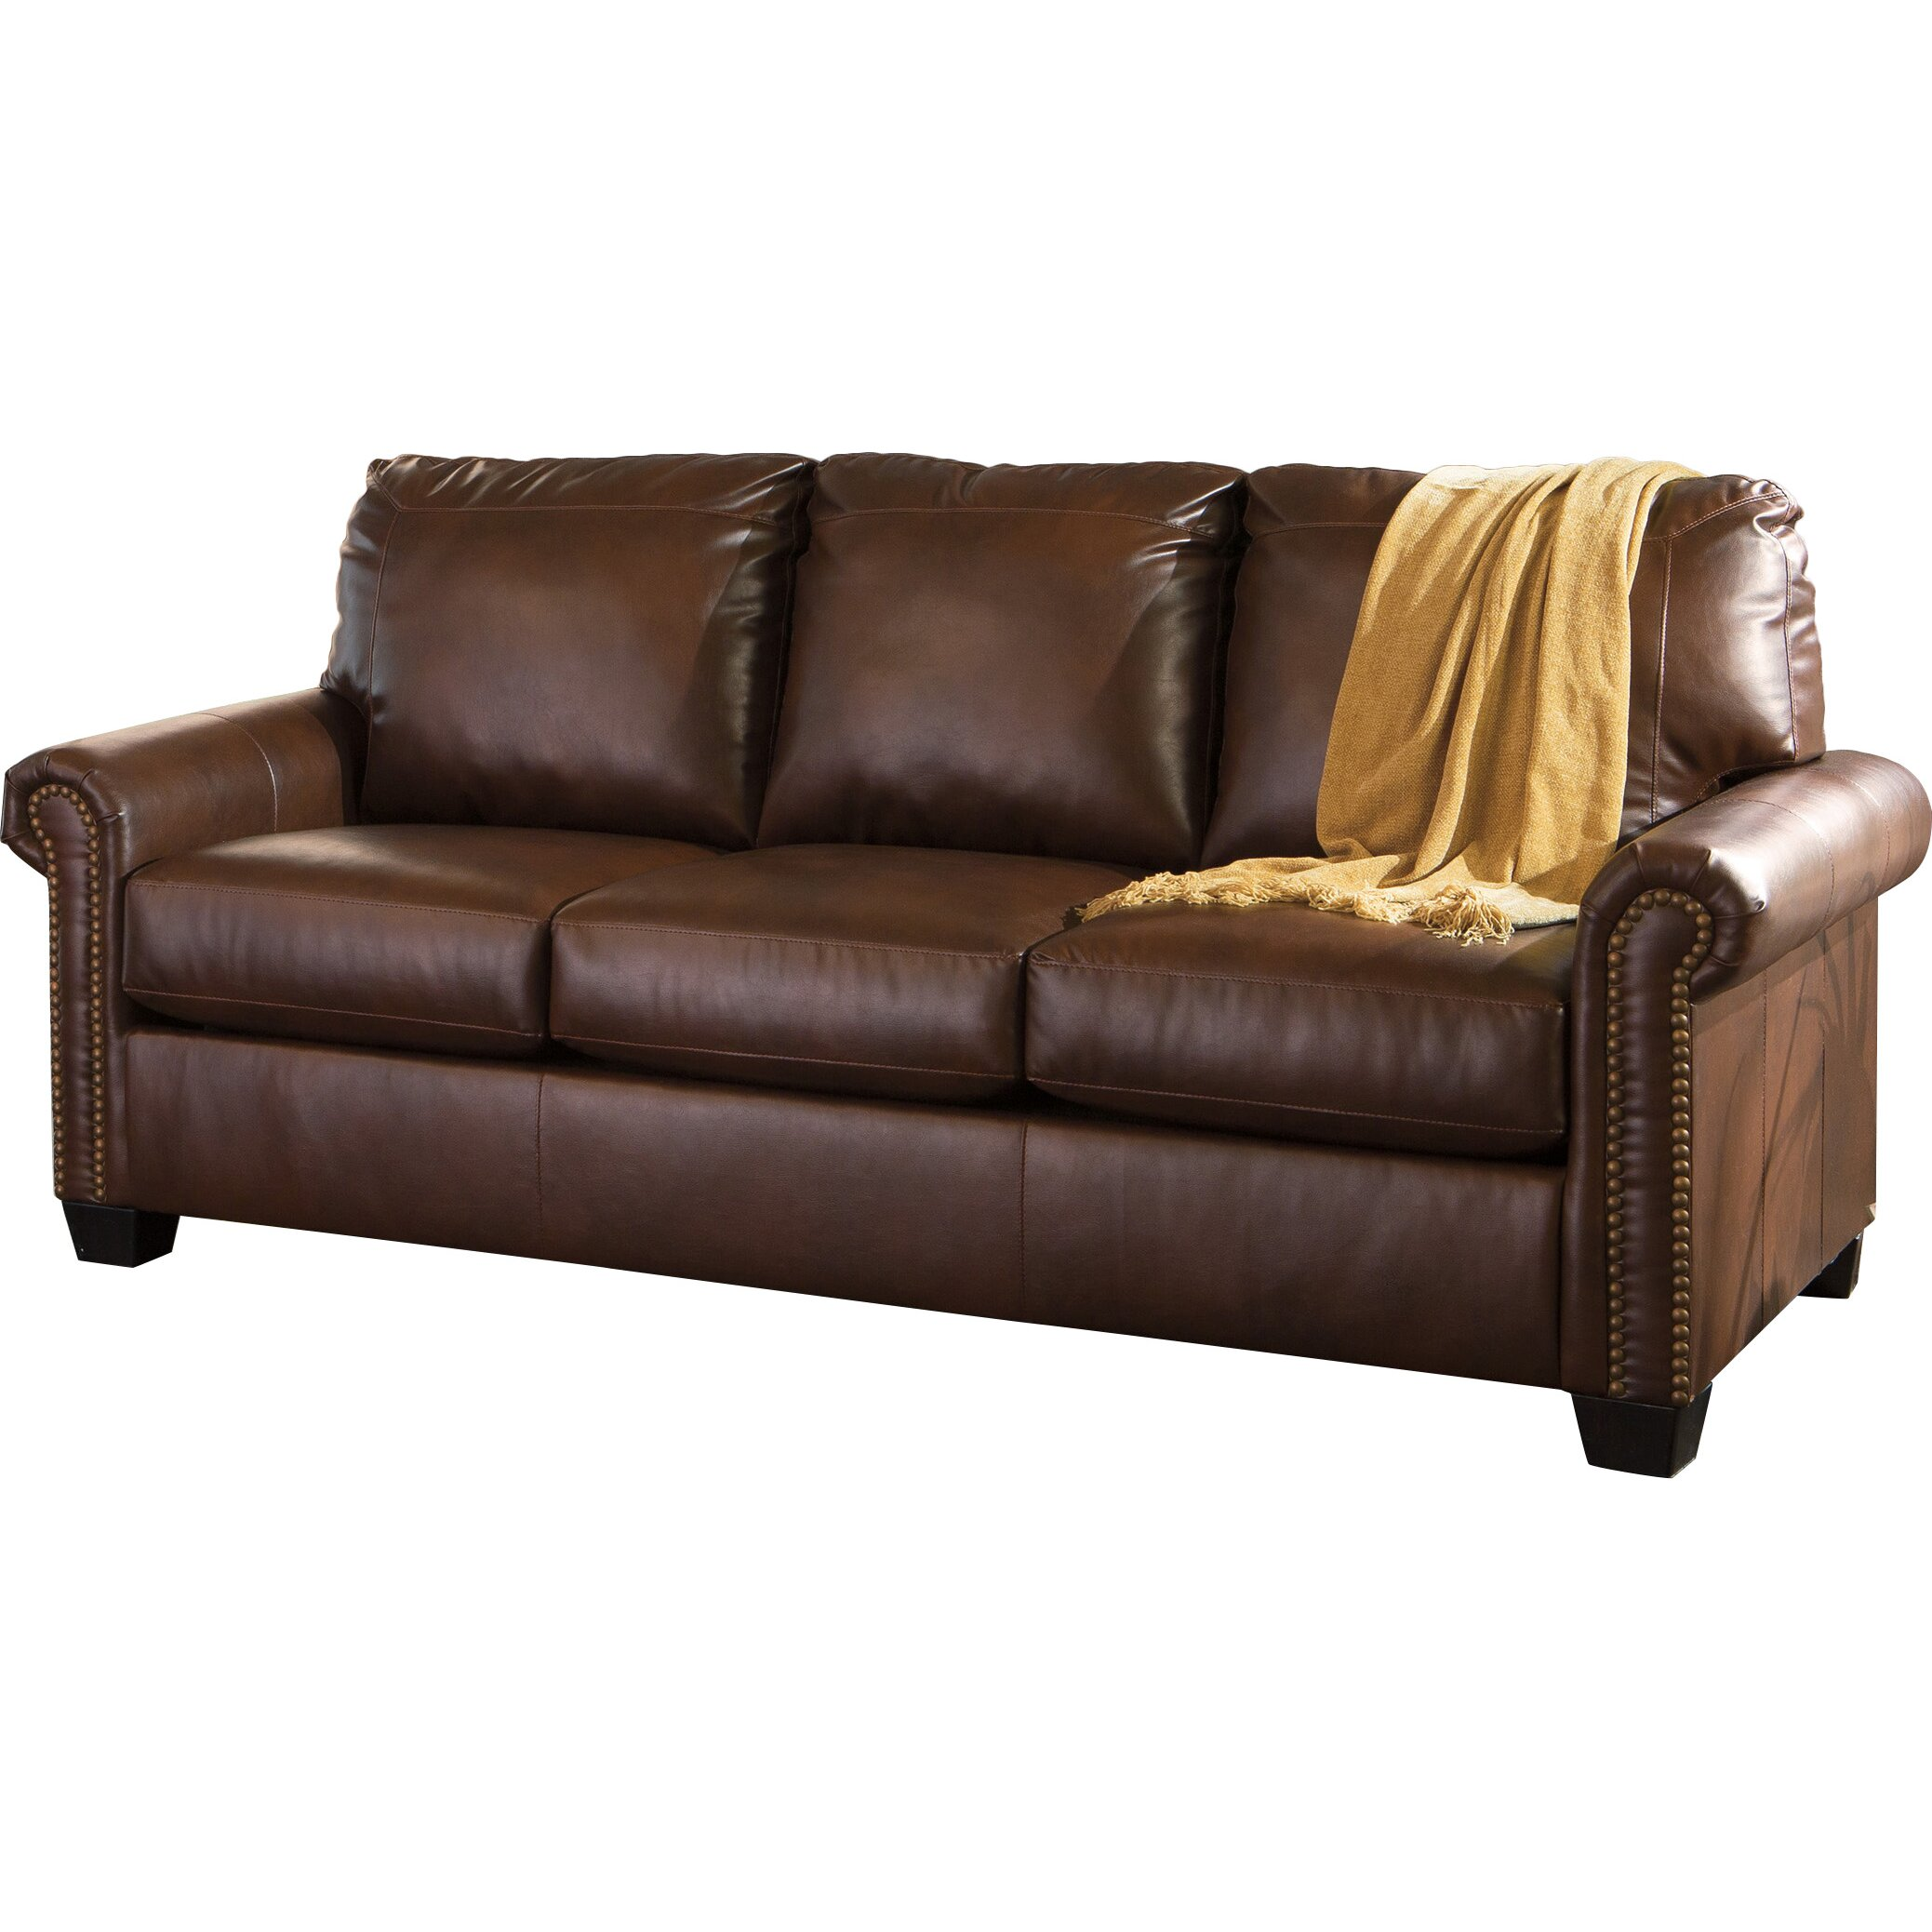 signature design by ashley lottie durablend queen sleeper sofa